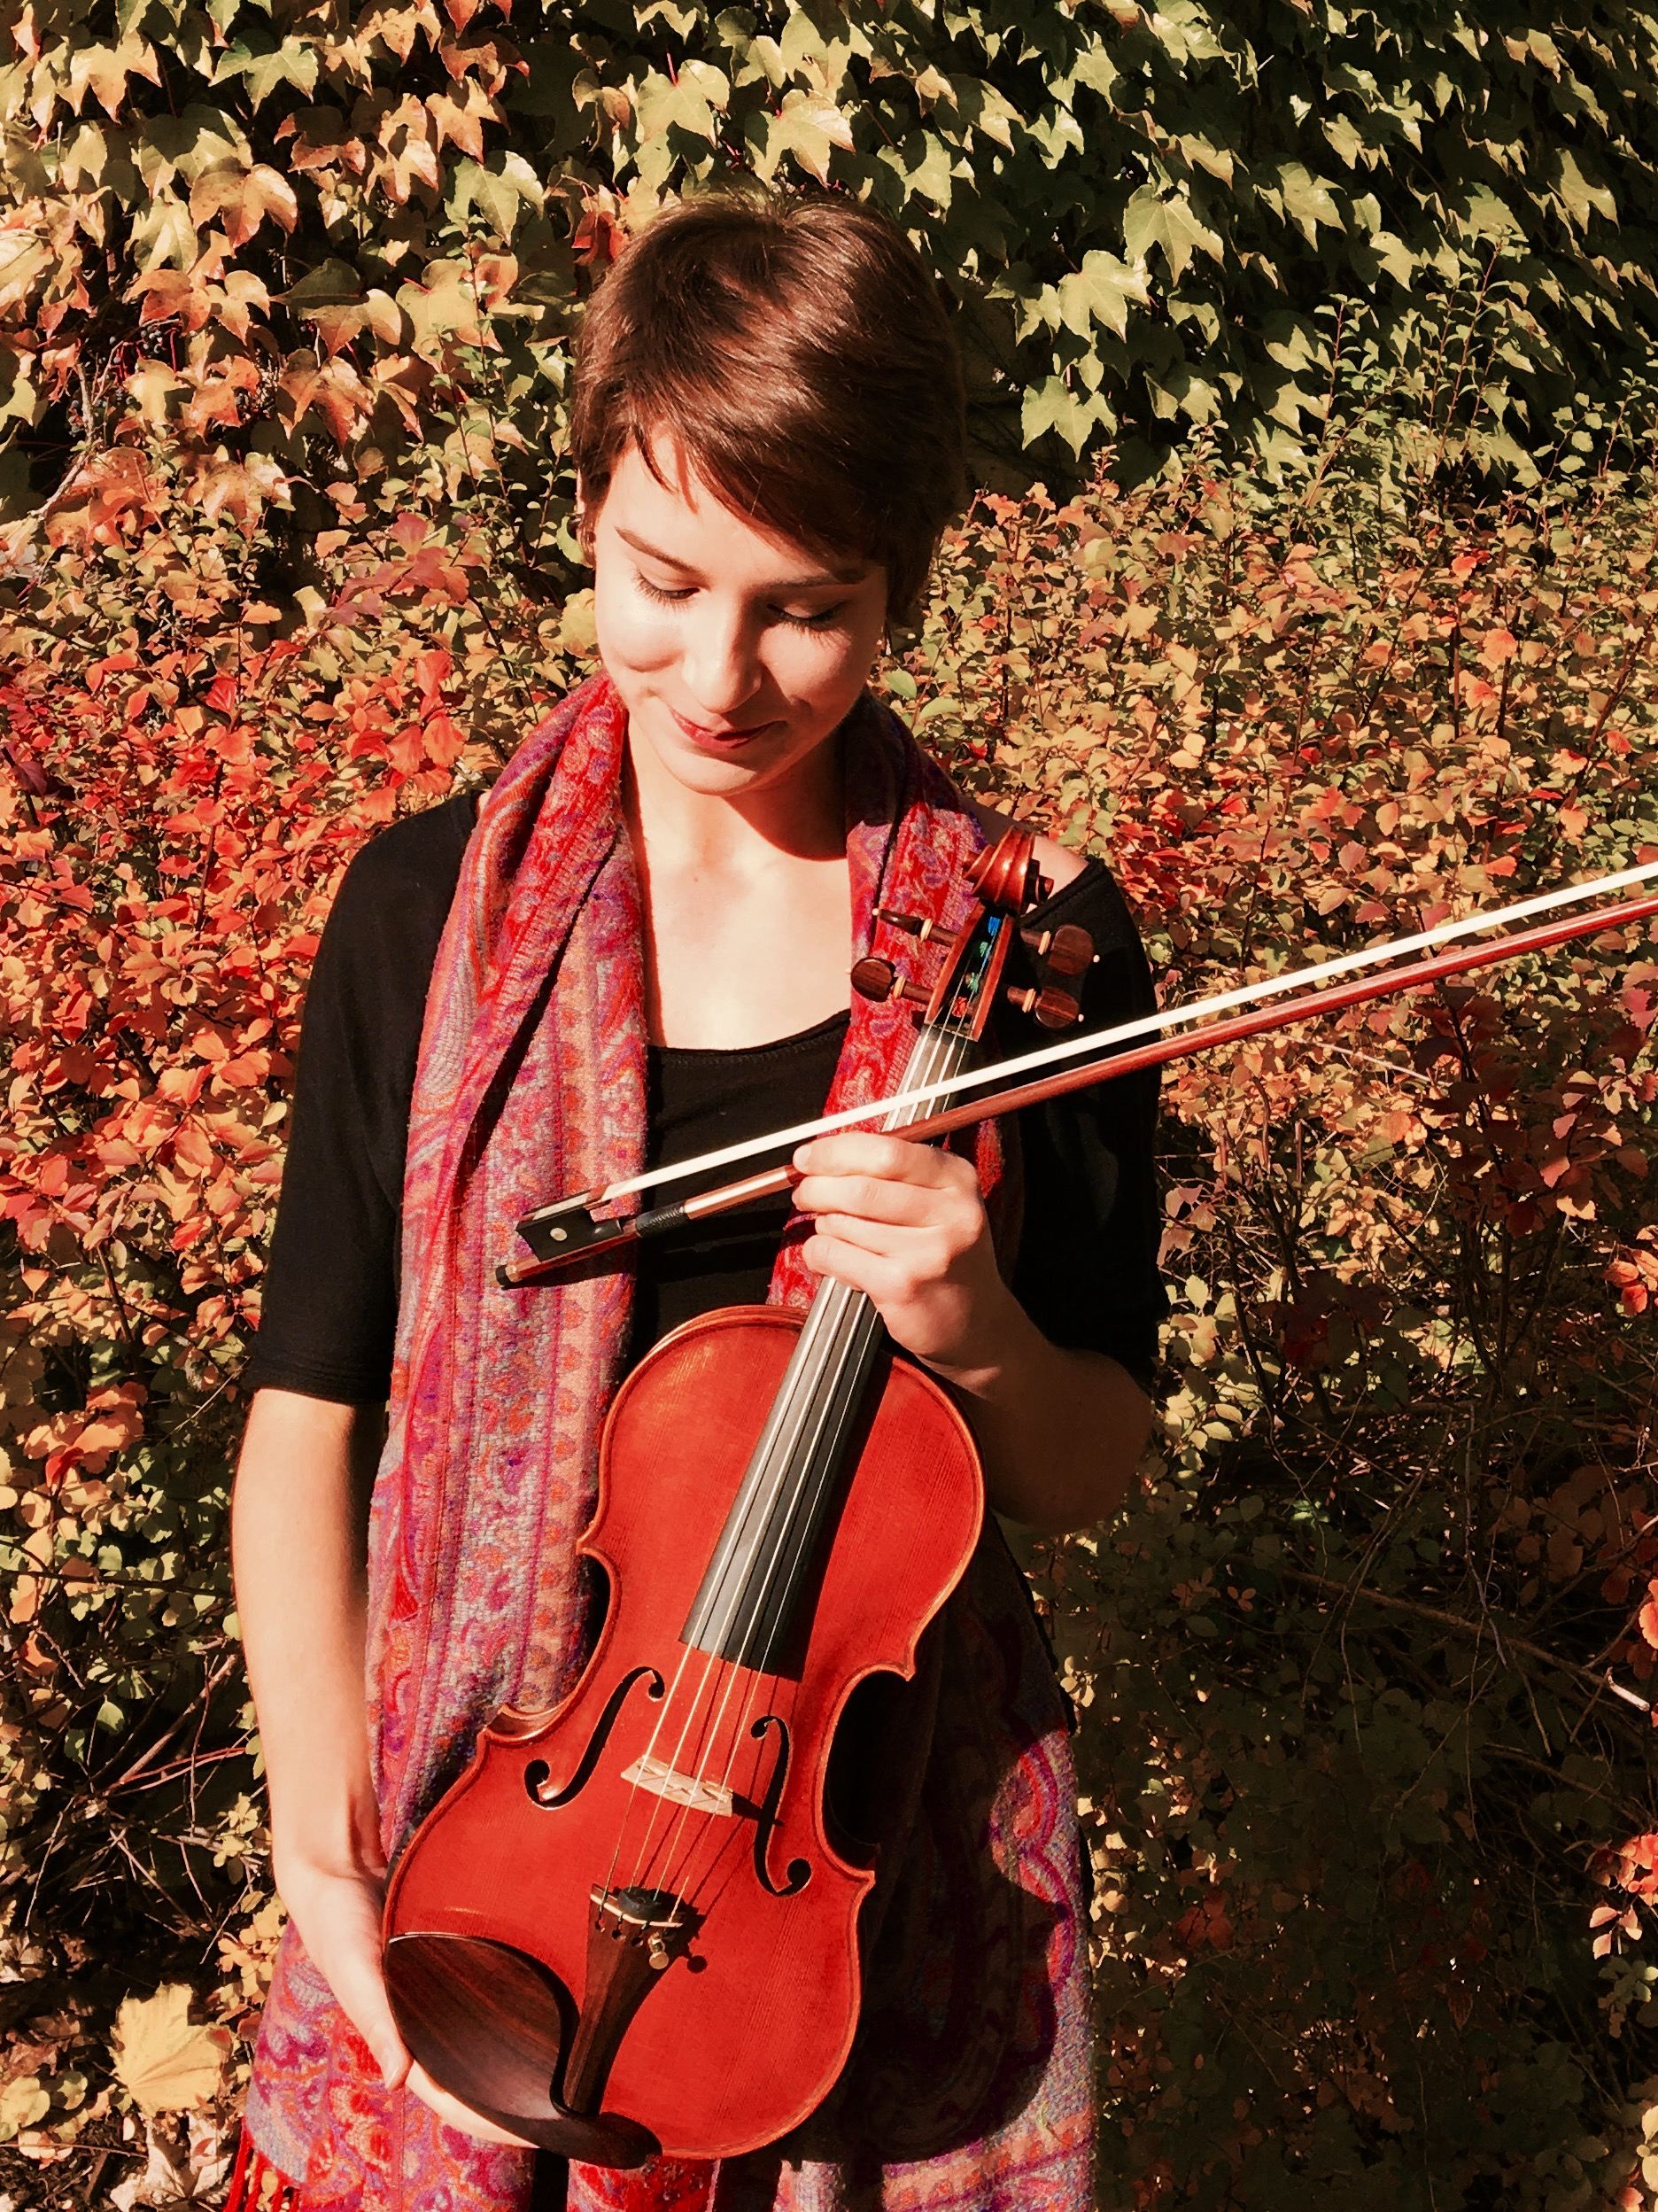 Photo of Isabelle Lebeuf-Taylor with violin, fall foliage in background